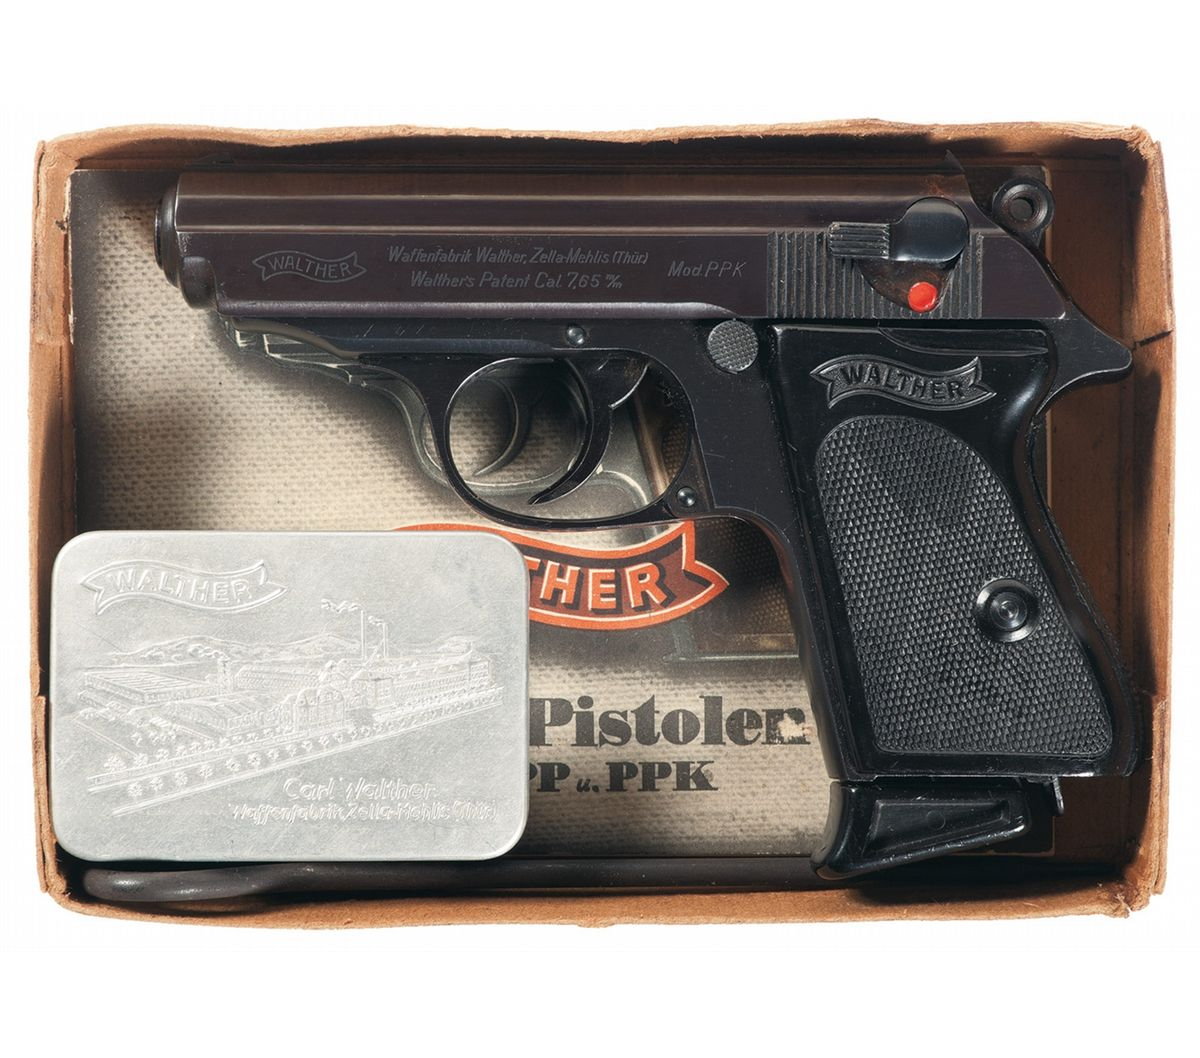 exceptional pre war walther ppk with pp walther box manual and rh icollector com Walther PPK Archer Custom Walther PPK